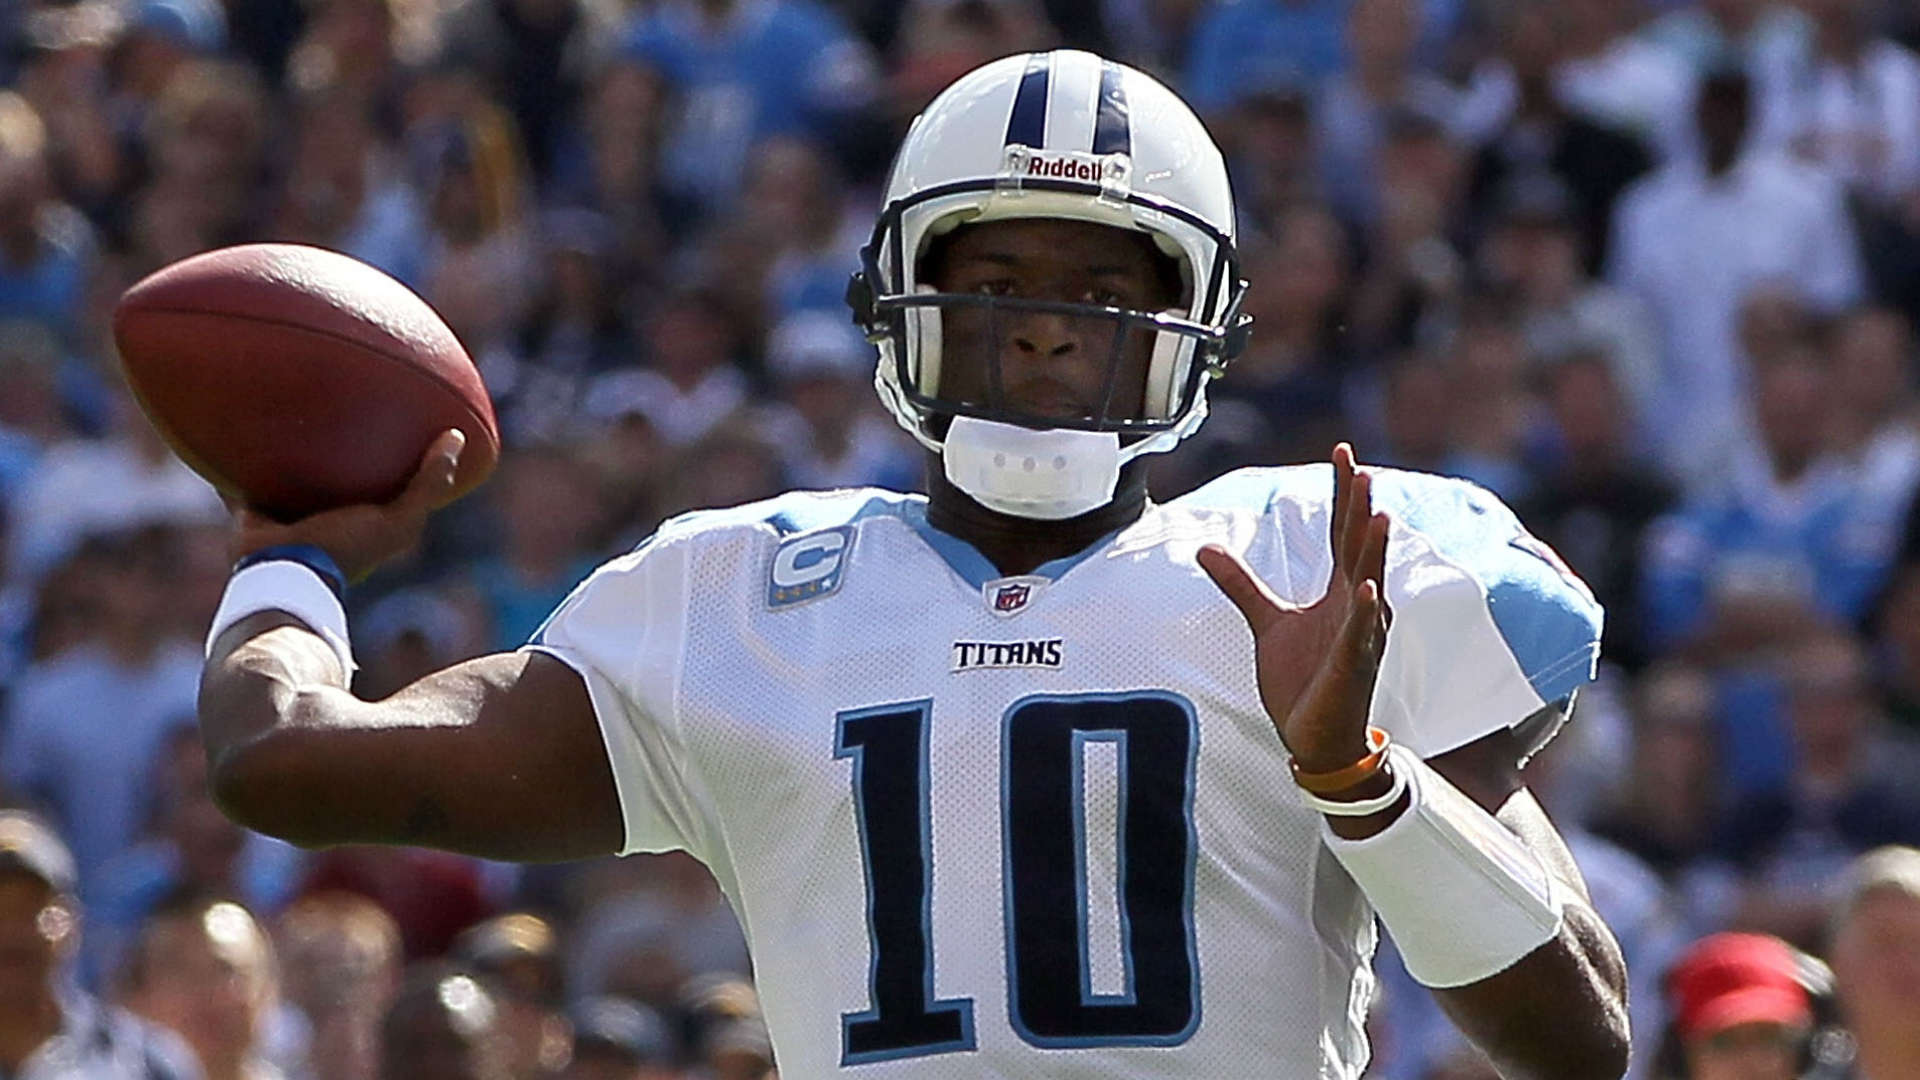 Vince-young-021517-usnews-getty-ftr_1626t8dsw88qs1m3kqgo1tgda5